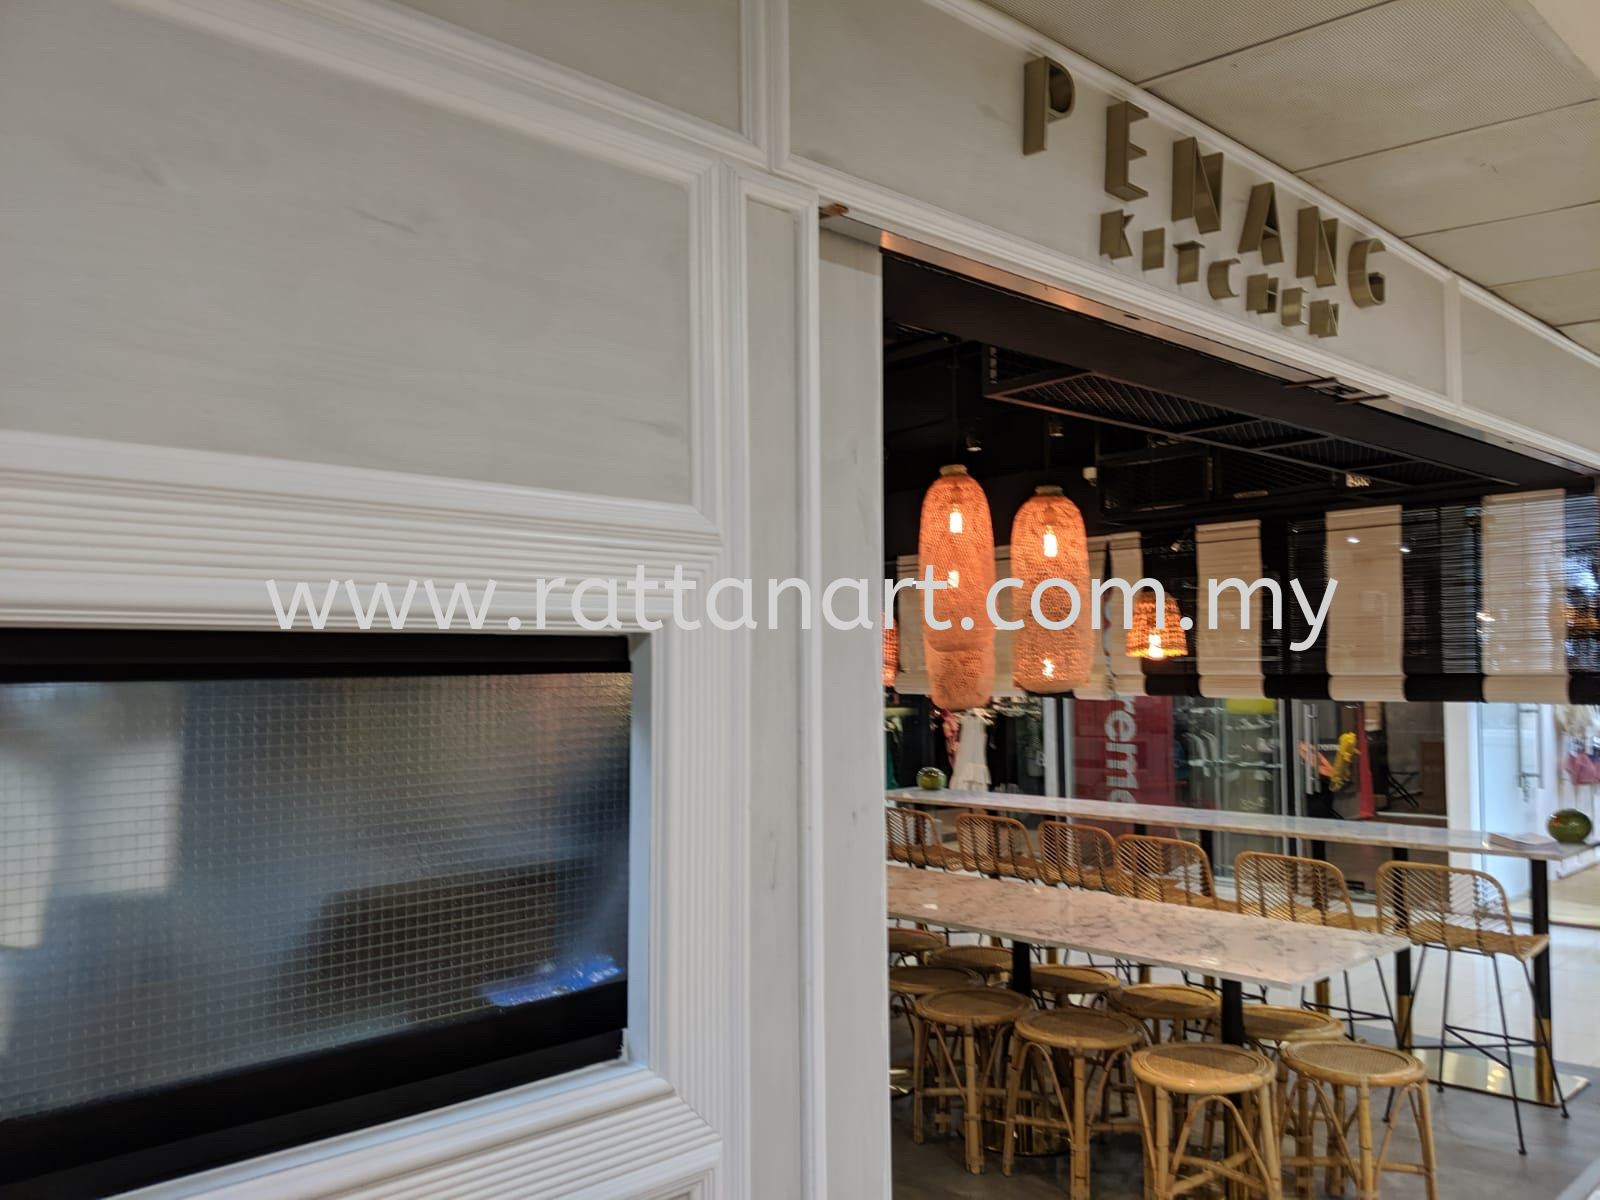 Made In Malaysia.  Production by Rattan Art.  Restaurant Name: Penang Kitchen